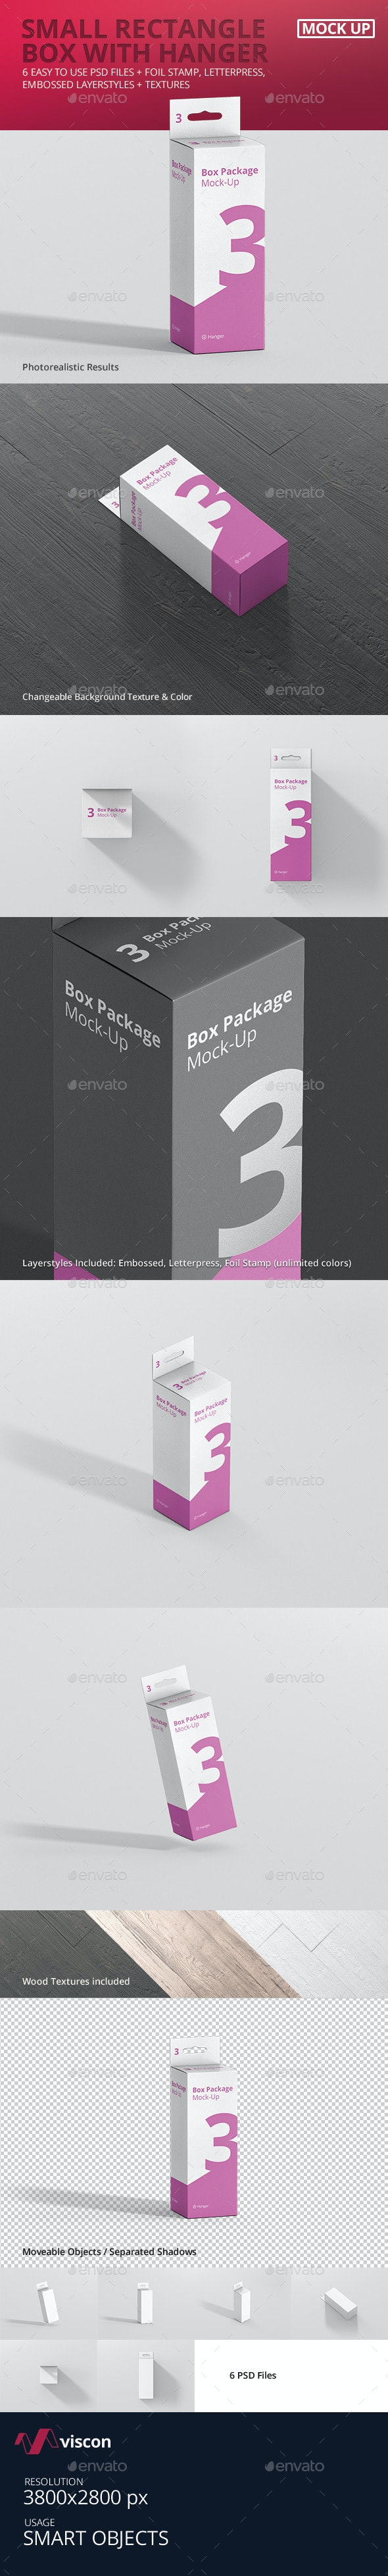 Package Box Mock-Up - Small Rectangle with Hanger - Miscellaneous Packaging